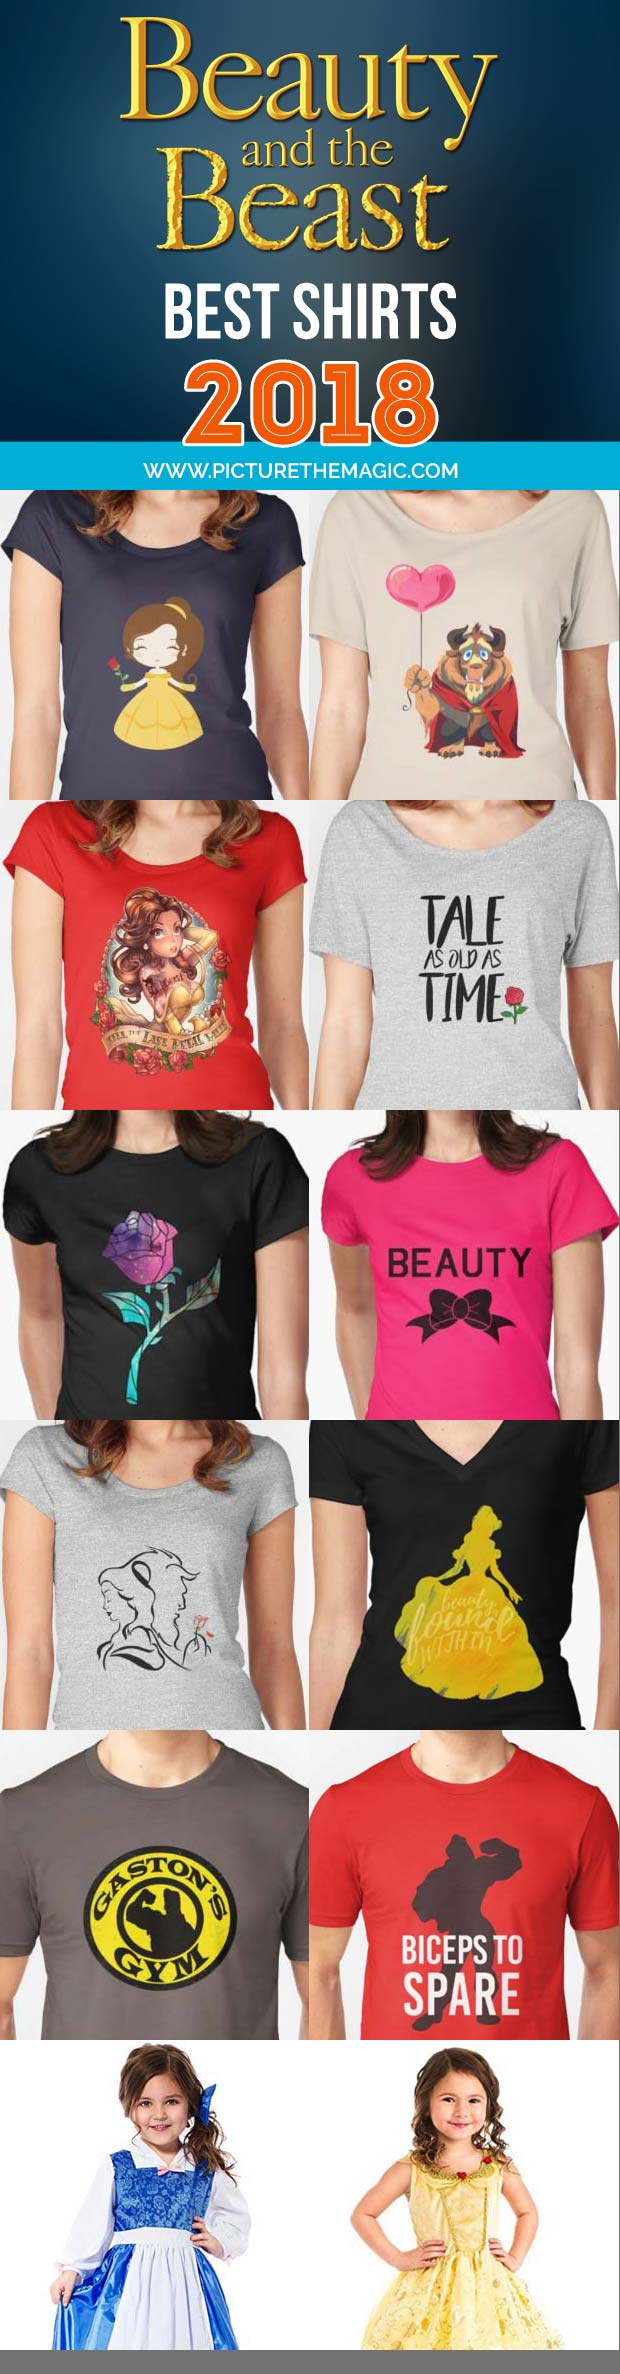 Over 100 of the year's best, funniest, and most EPIC Beauty and the Beast Shirts available. All of our favorites, all in one place.